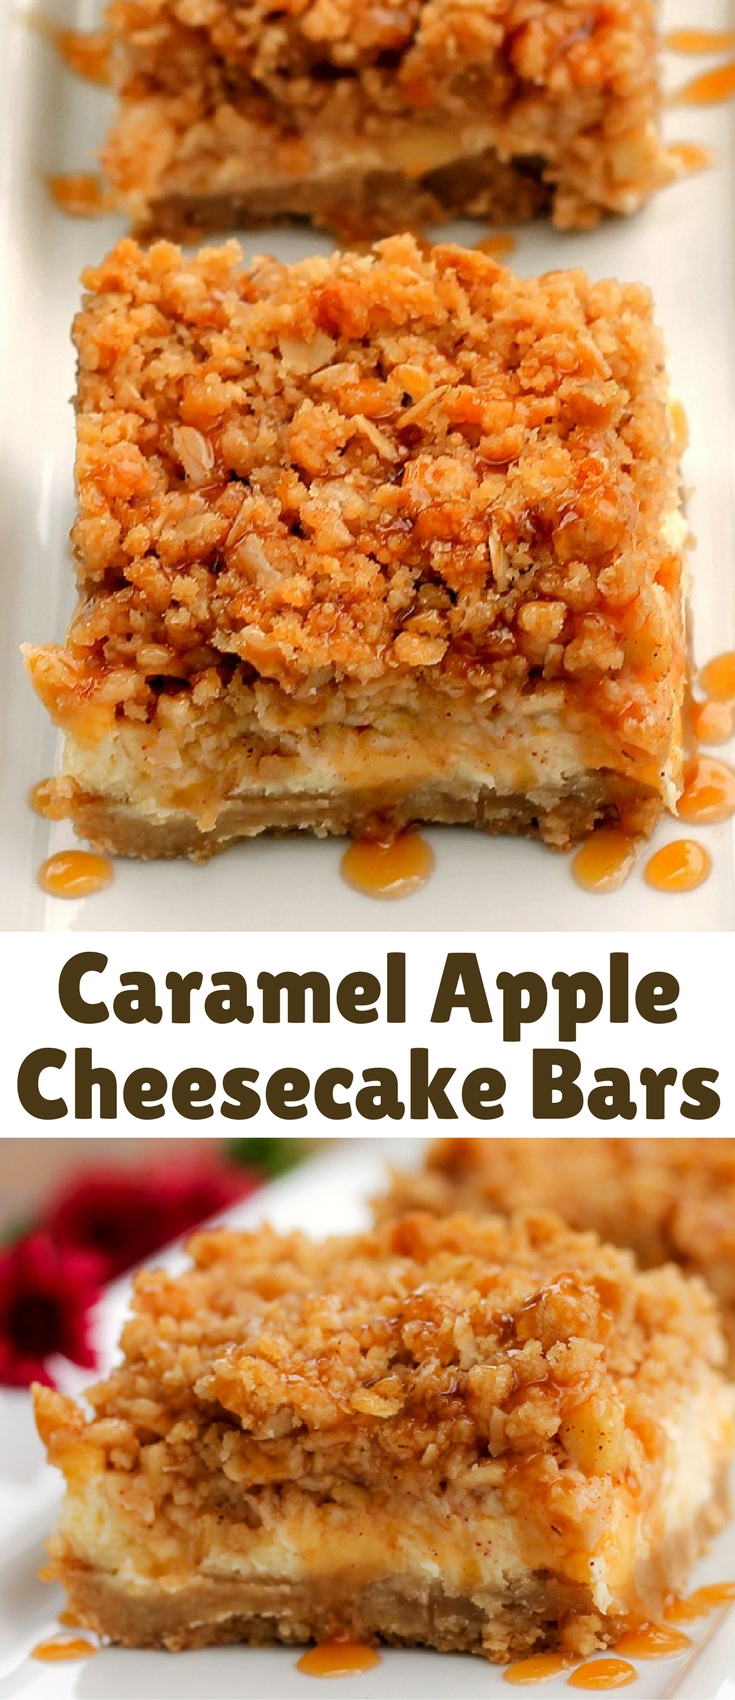 Caramel Apple Cheesecake Bars… I loved these bars! They have the textures of smooth and crunchy along with the flavors of tart and sweet to make for a very delightful taste experience.